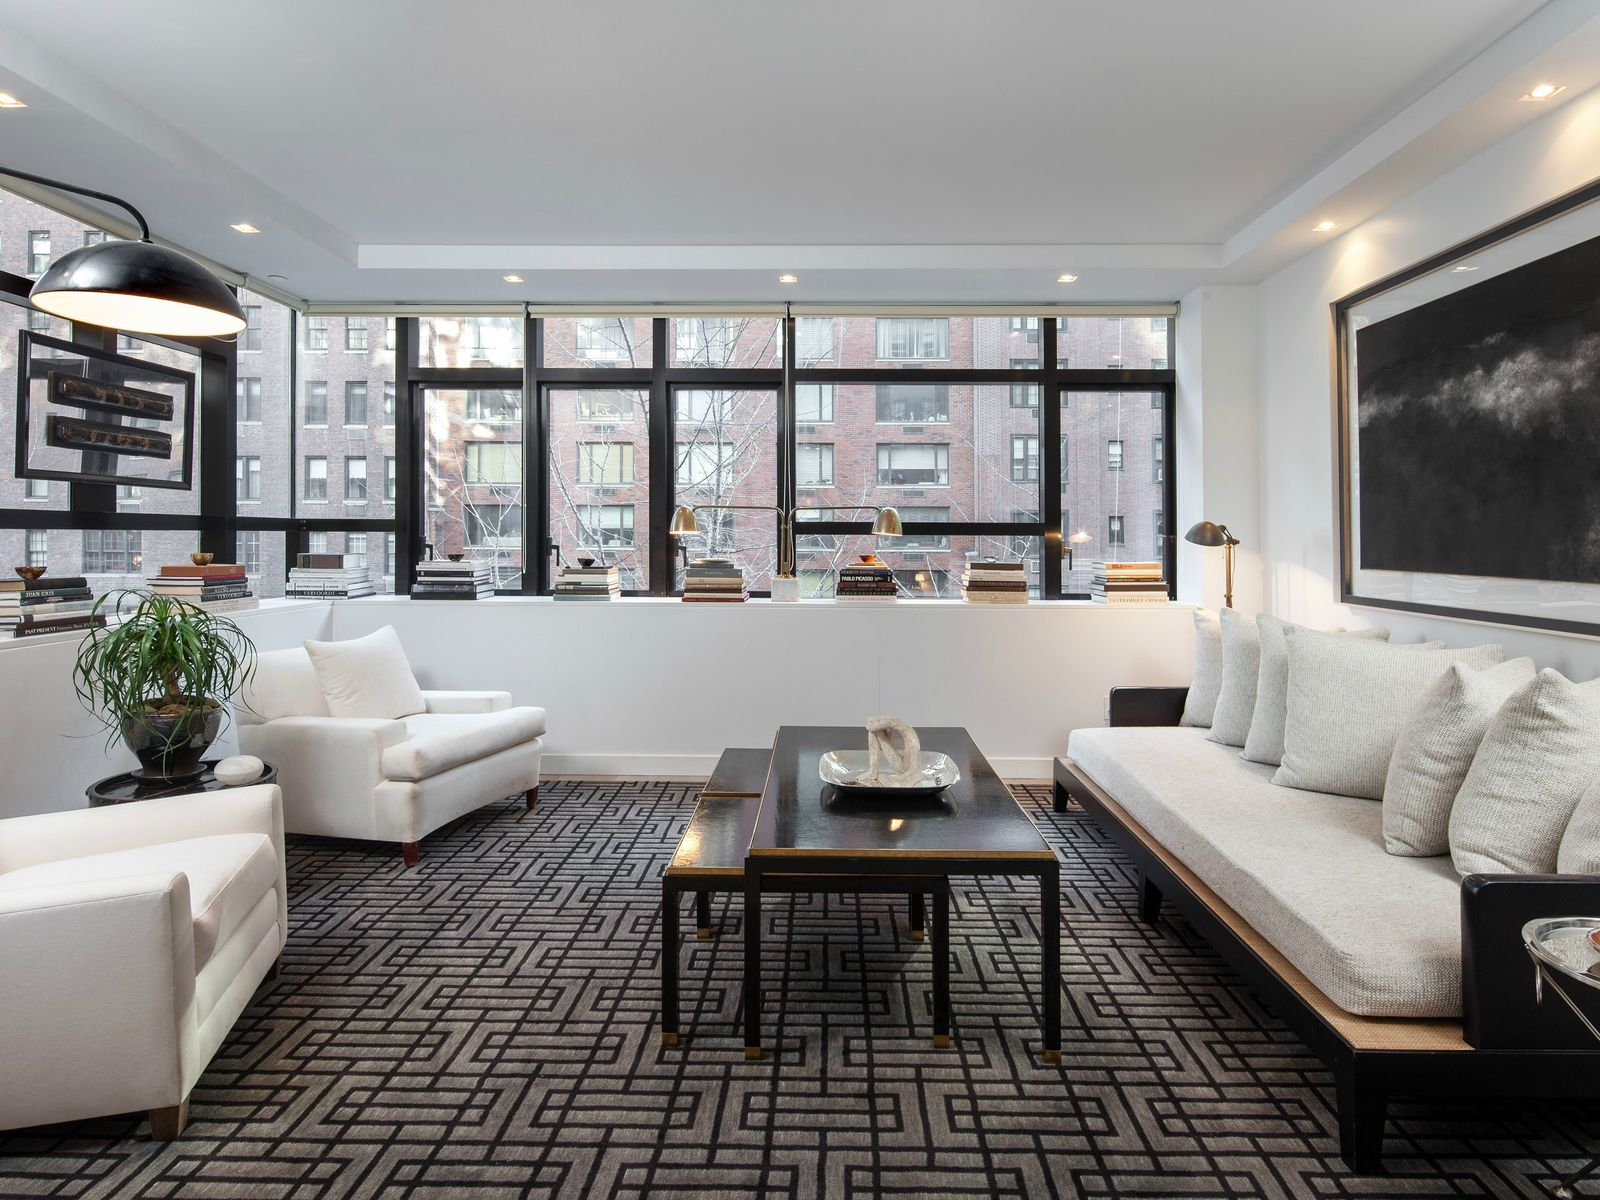 441 East 57th Street, New York NY Condominium - New York City Real Estate